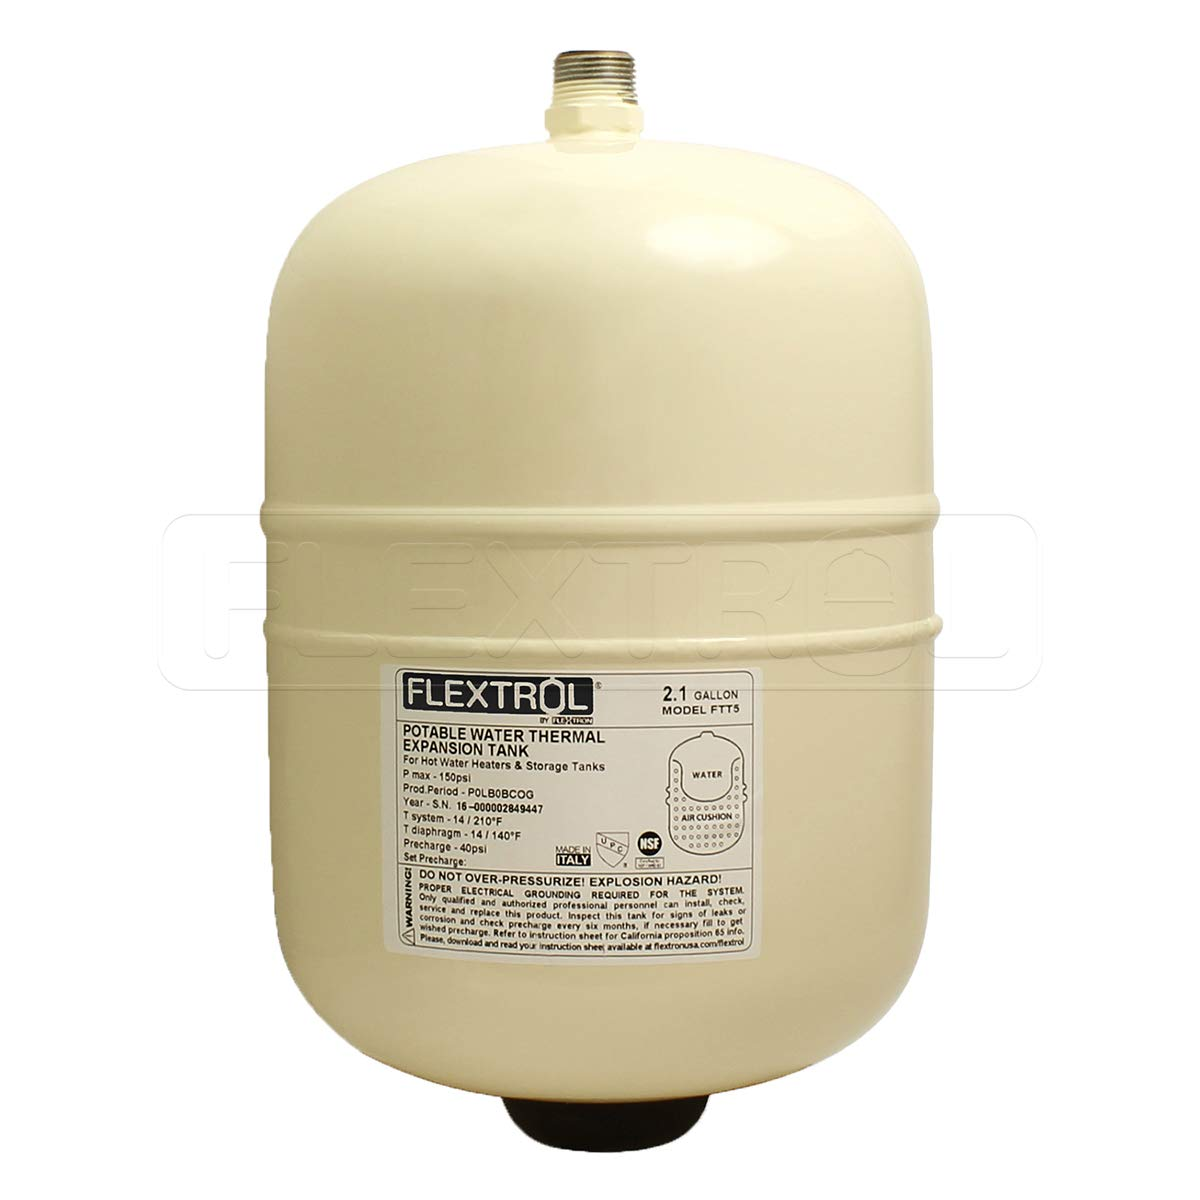 Flextrol FTT5 Thermal Expansion Tanks-for Hot Water Heaters, Carbon Shell, Stainless Steel 3/4 Inch MIP Connection, Butyl Diaphragm, 150 PSI, 210 Degrees Fahrenheit, Almond Color, 2.1 Gallons